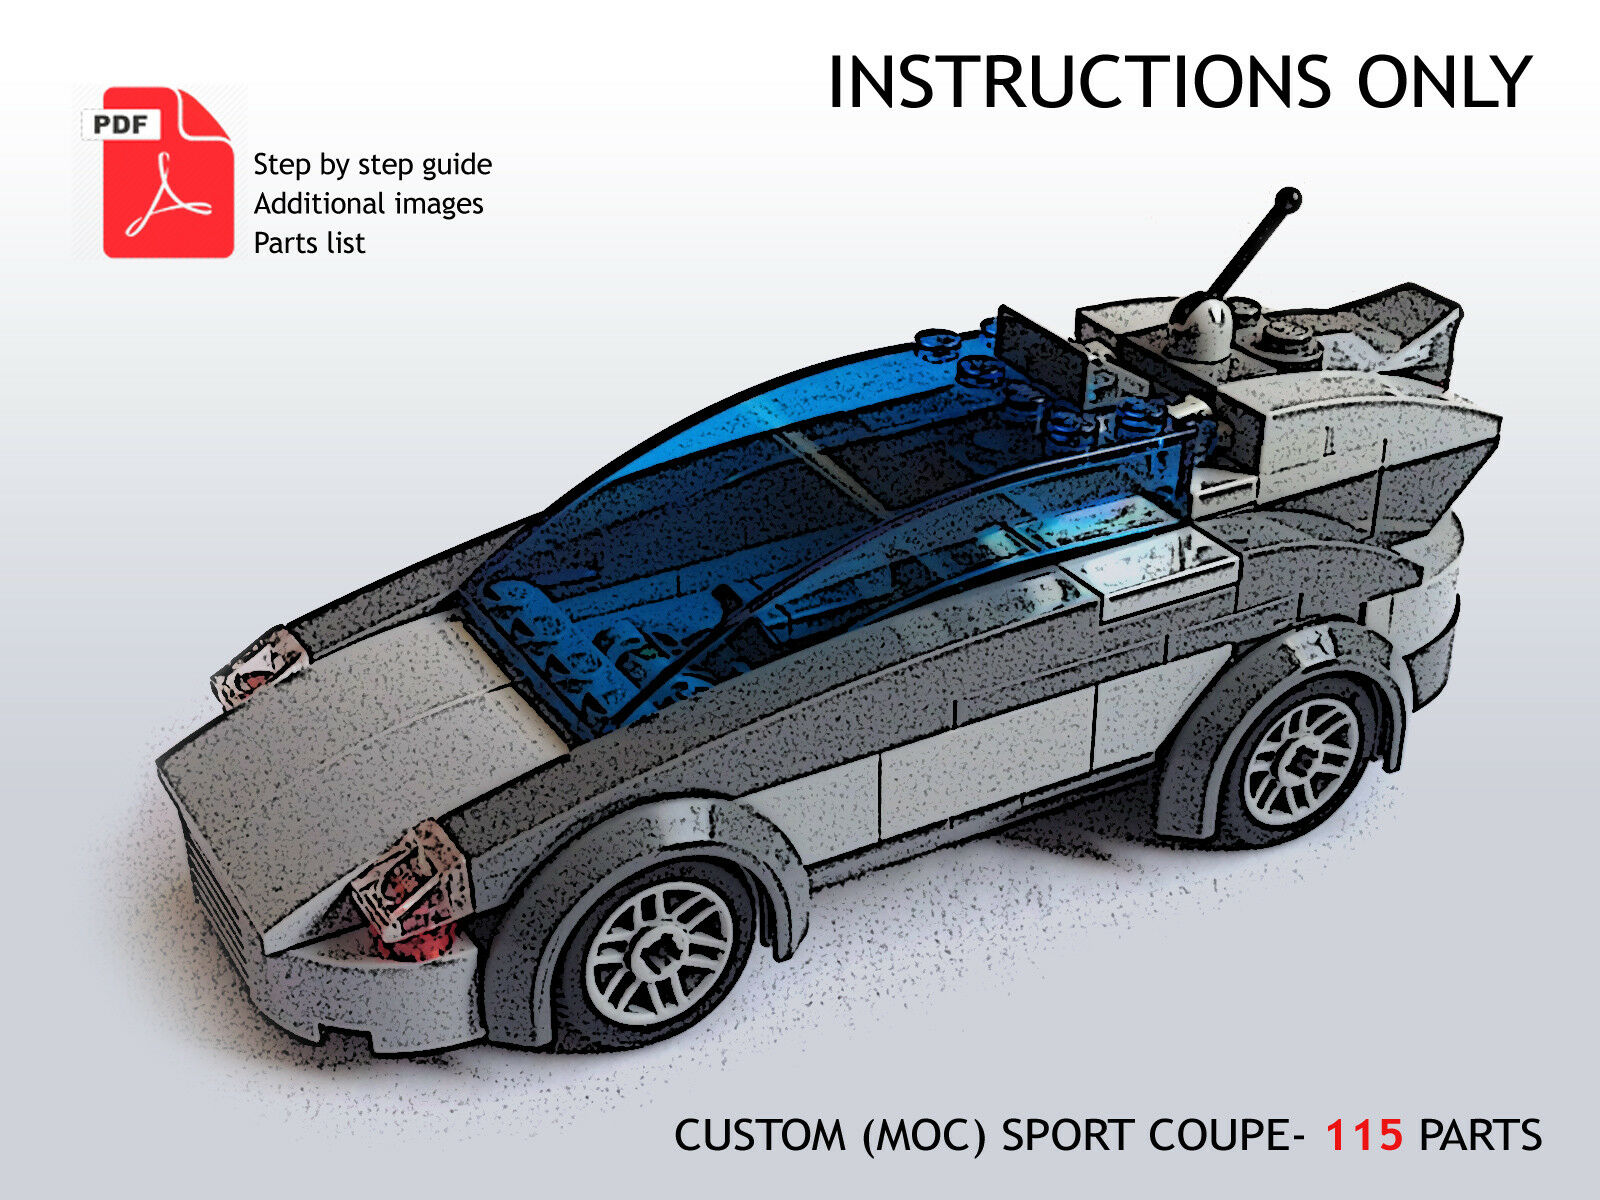 Lego Custom Moc Car Sport Coup Pdf Instructions Only 425